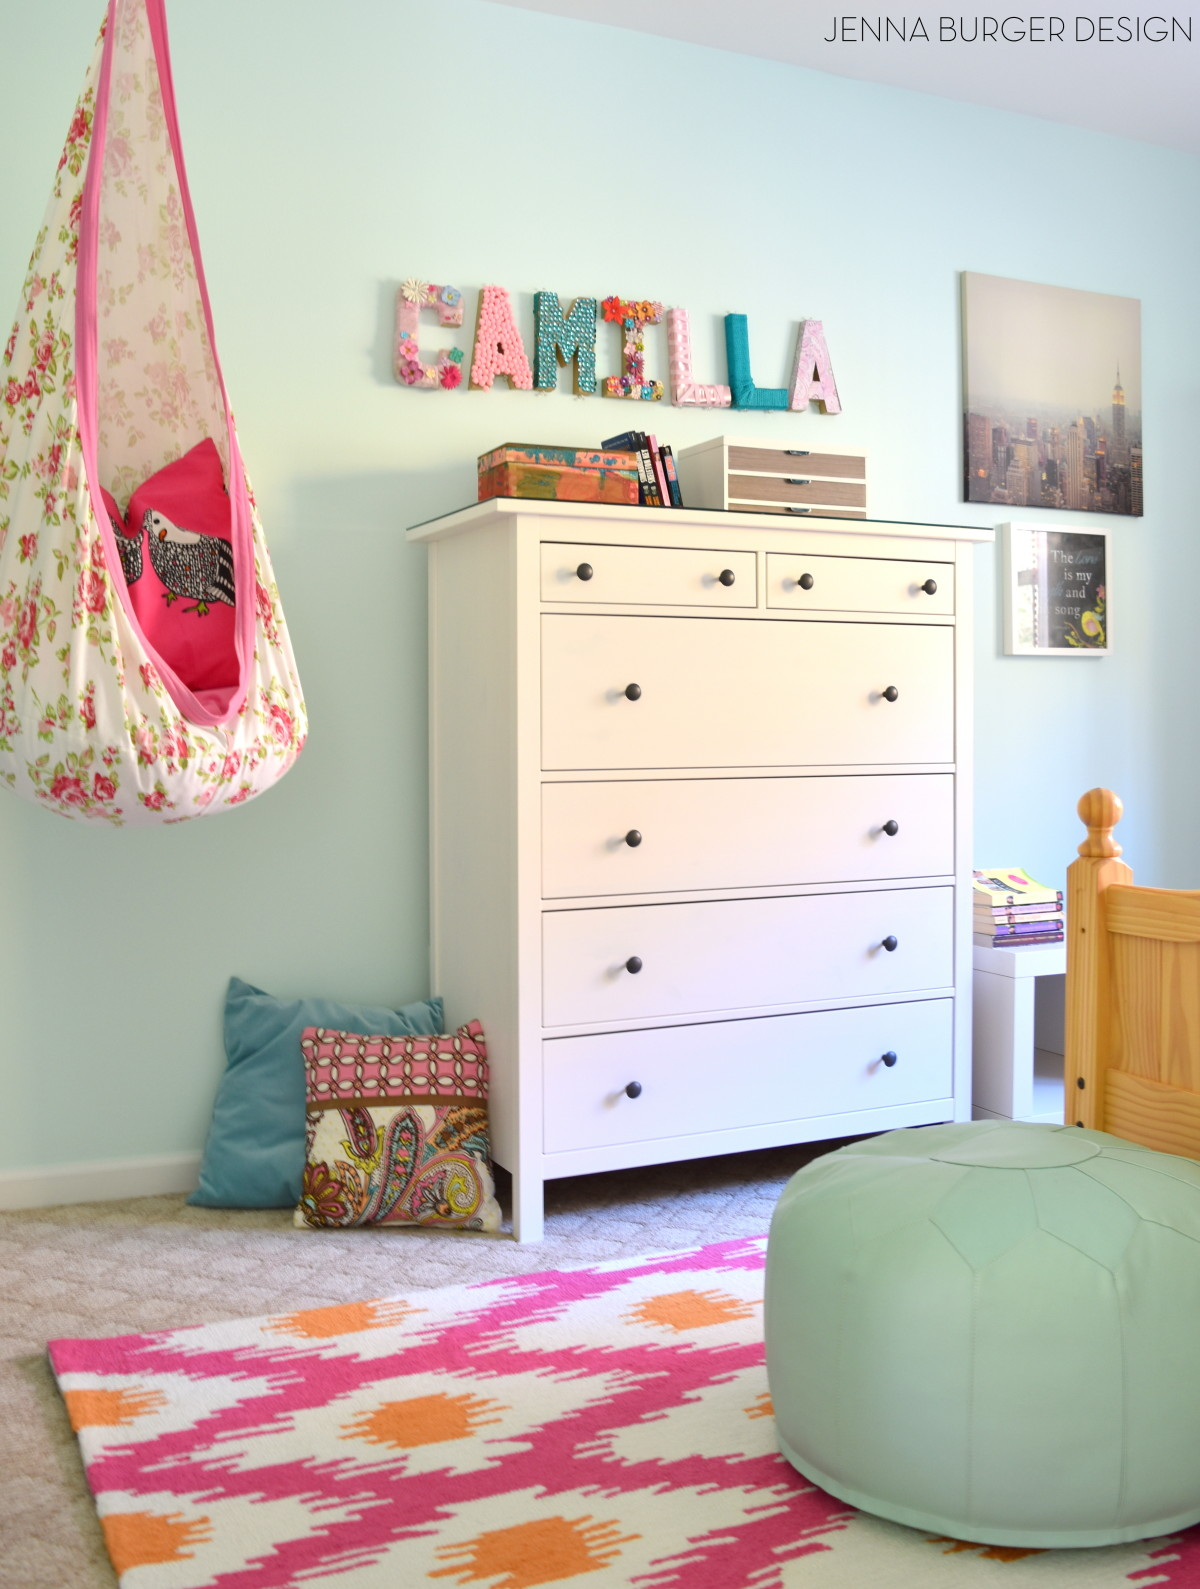 Fuschia Turquoise Bedroom Makeover Jenna Burger - Turquoise bedroom decorating ideas